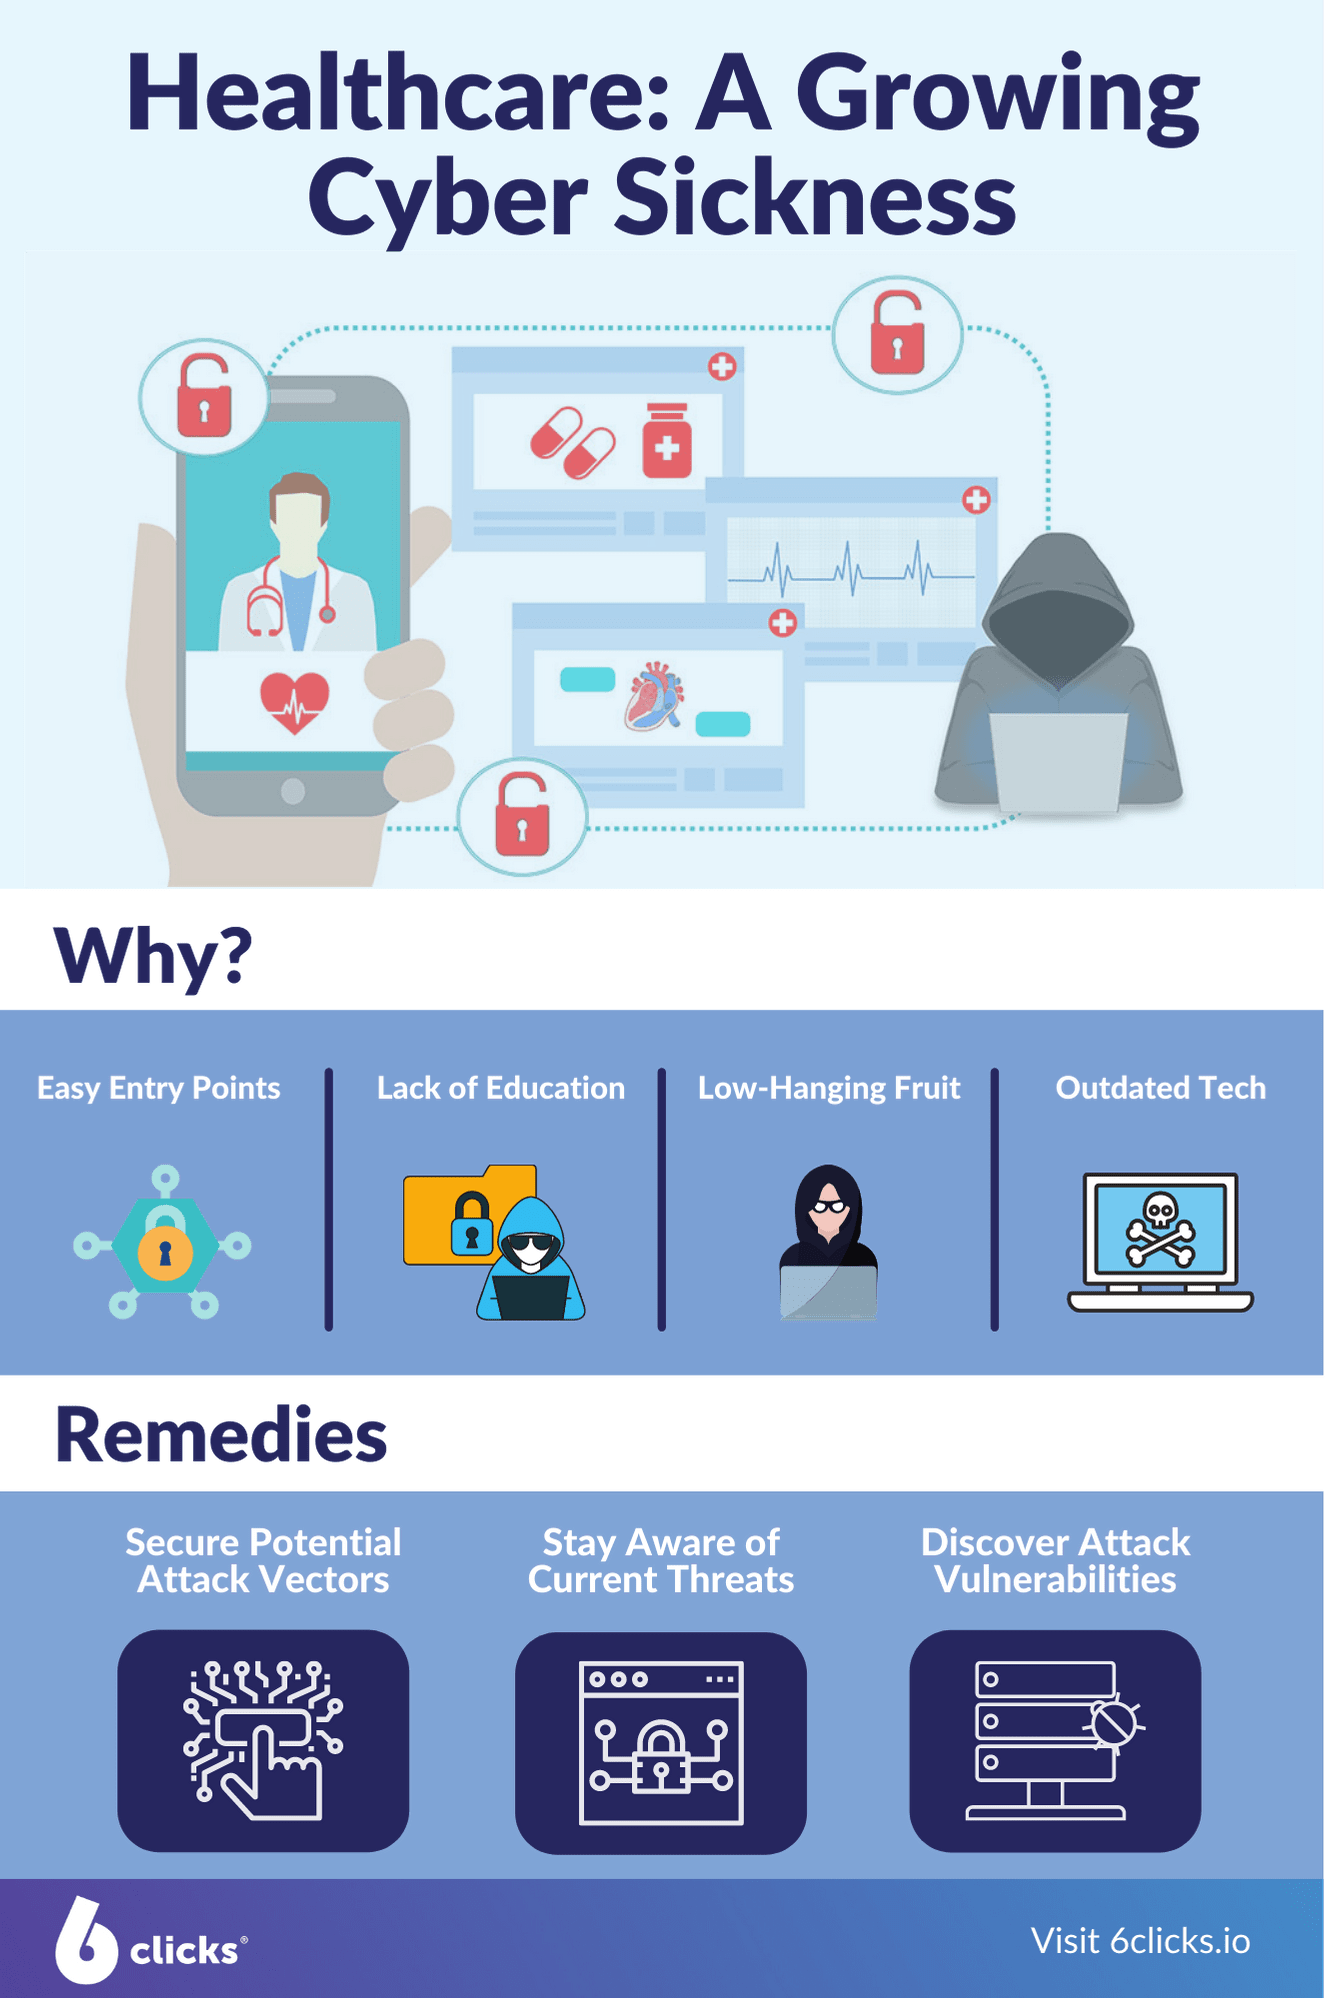 Healthcare Sector Infographic - 6clicks